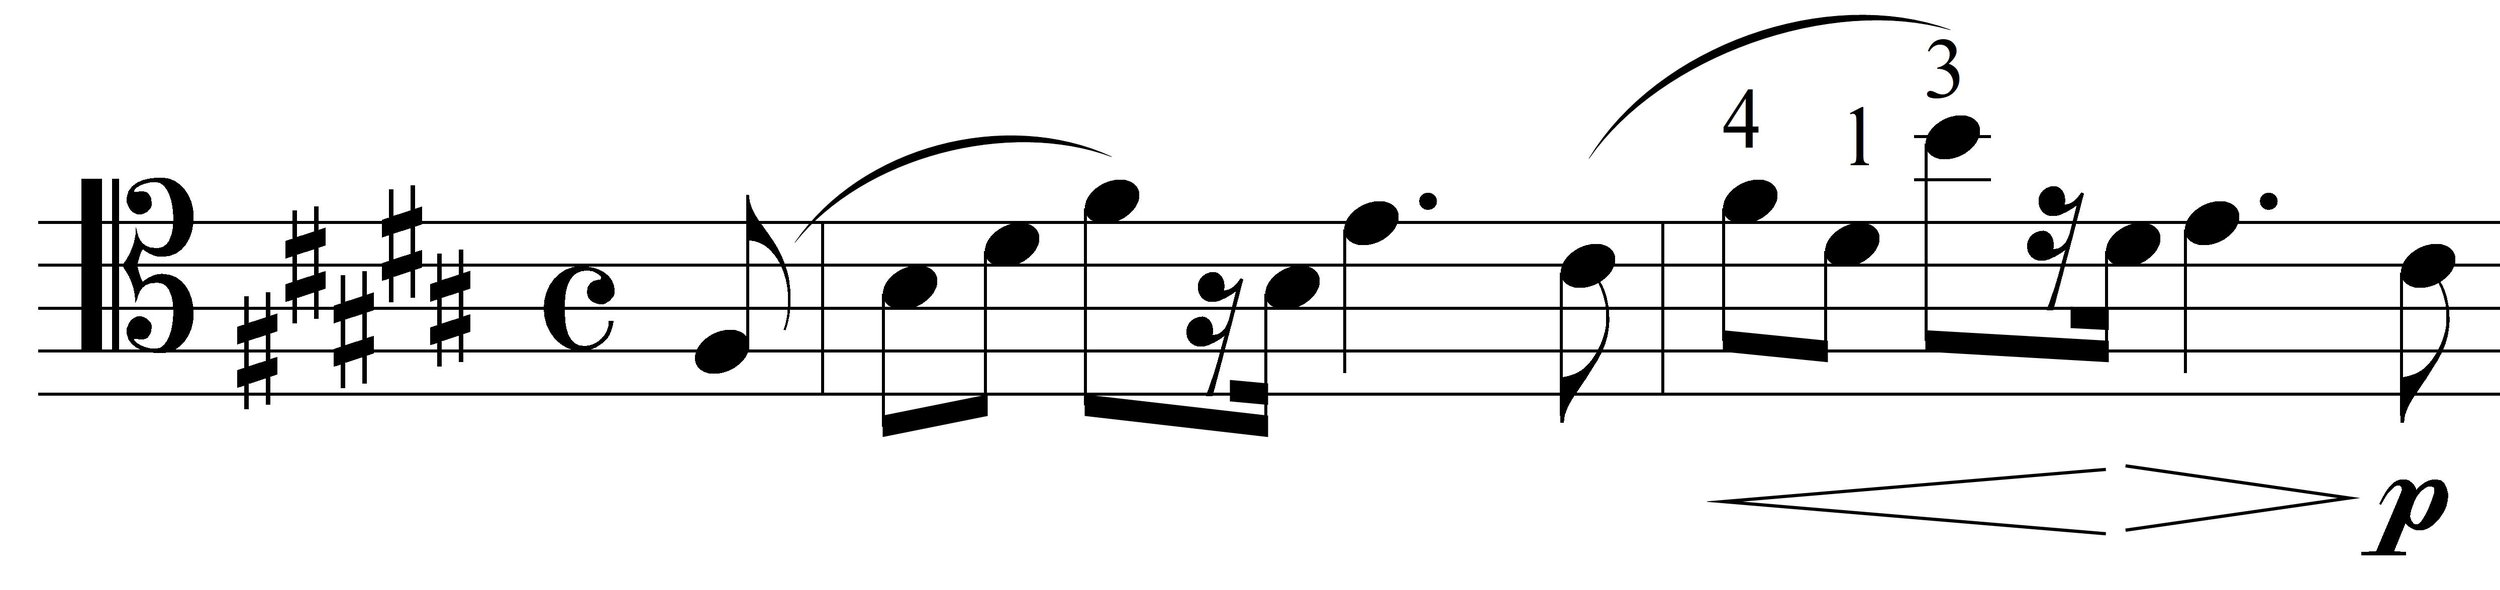 (mm. 4-5 feature a shift up to a high B)